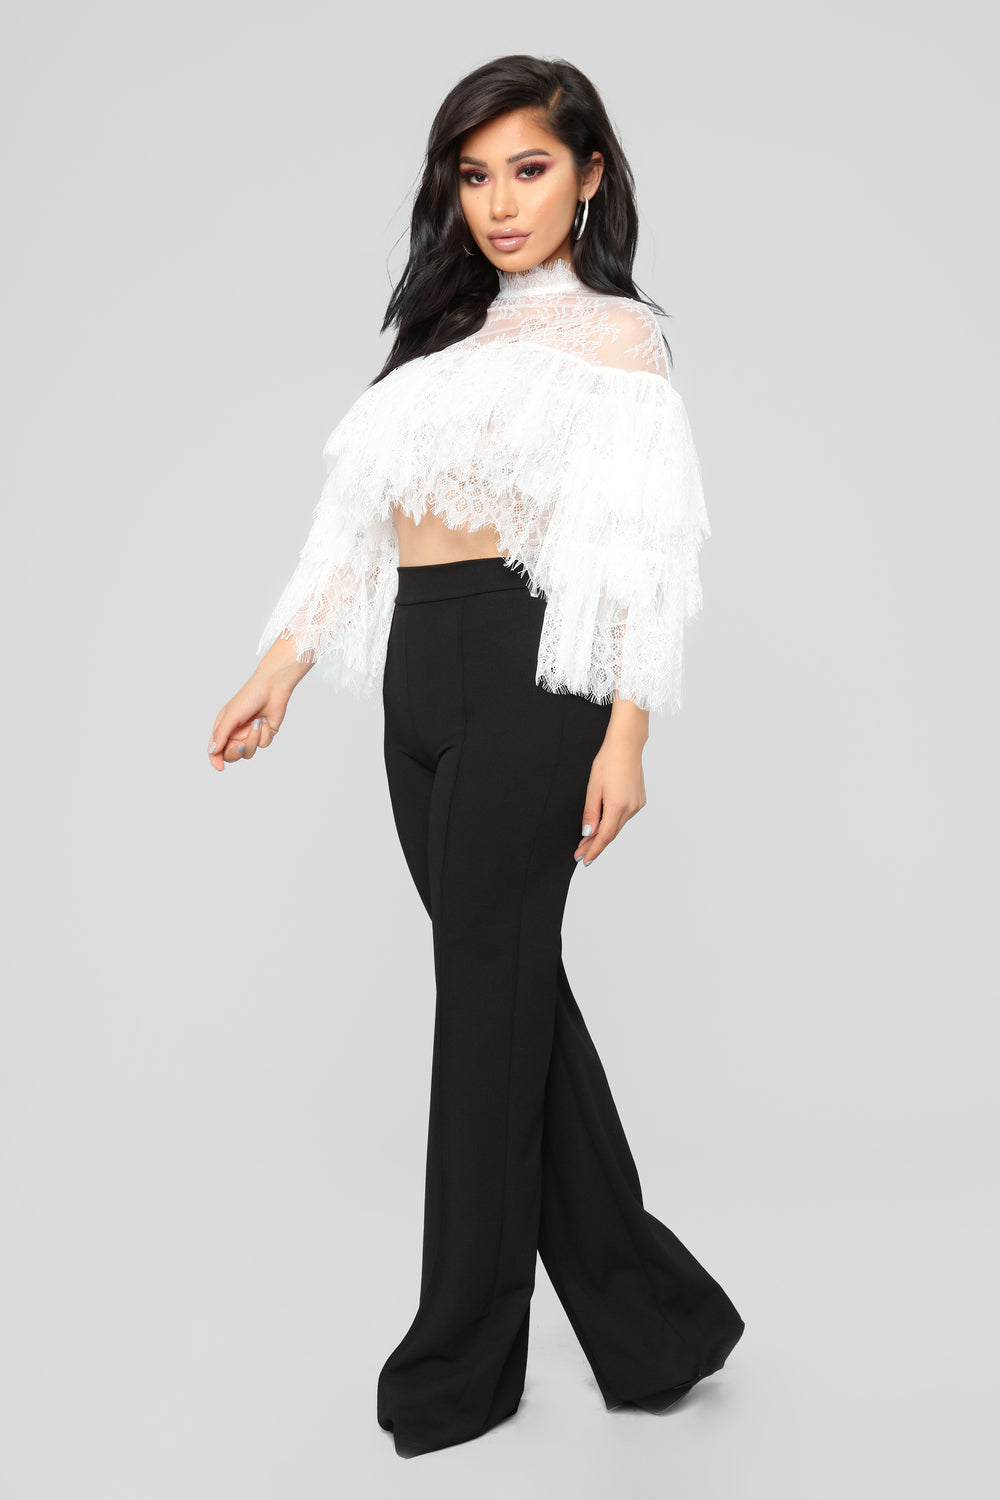 Midnight Kiss Ruffle Top - White